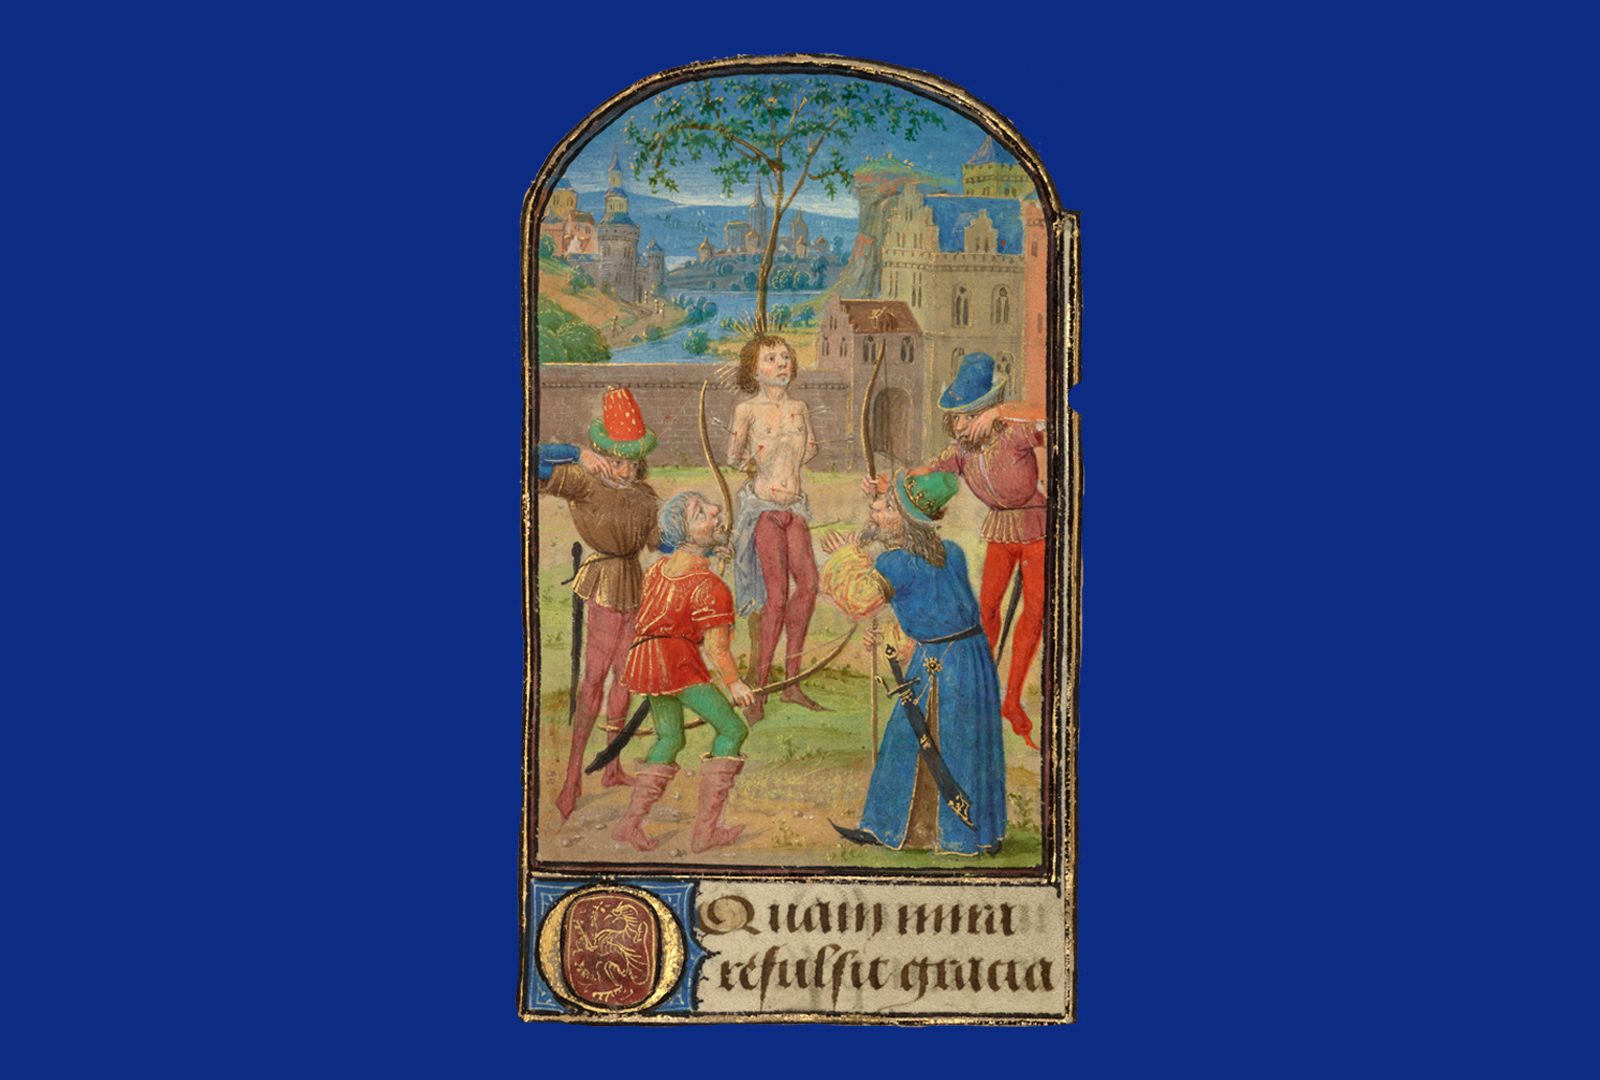 Saint Sebastian stands shirtless with arms behind him as he is shot with arrows by four people in bright colors